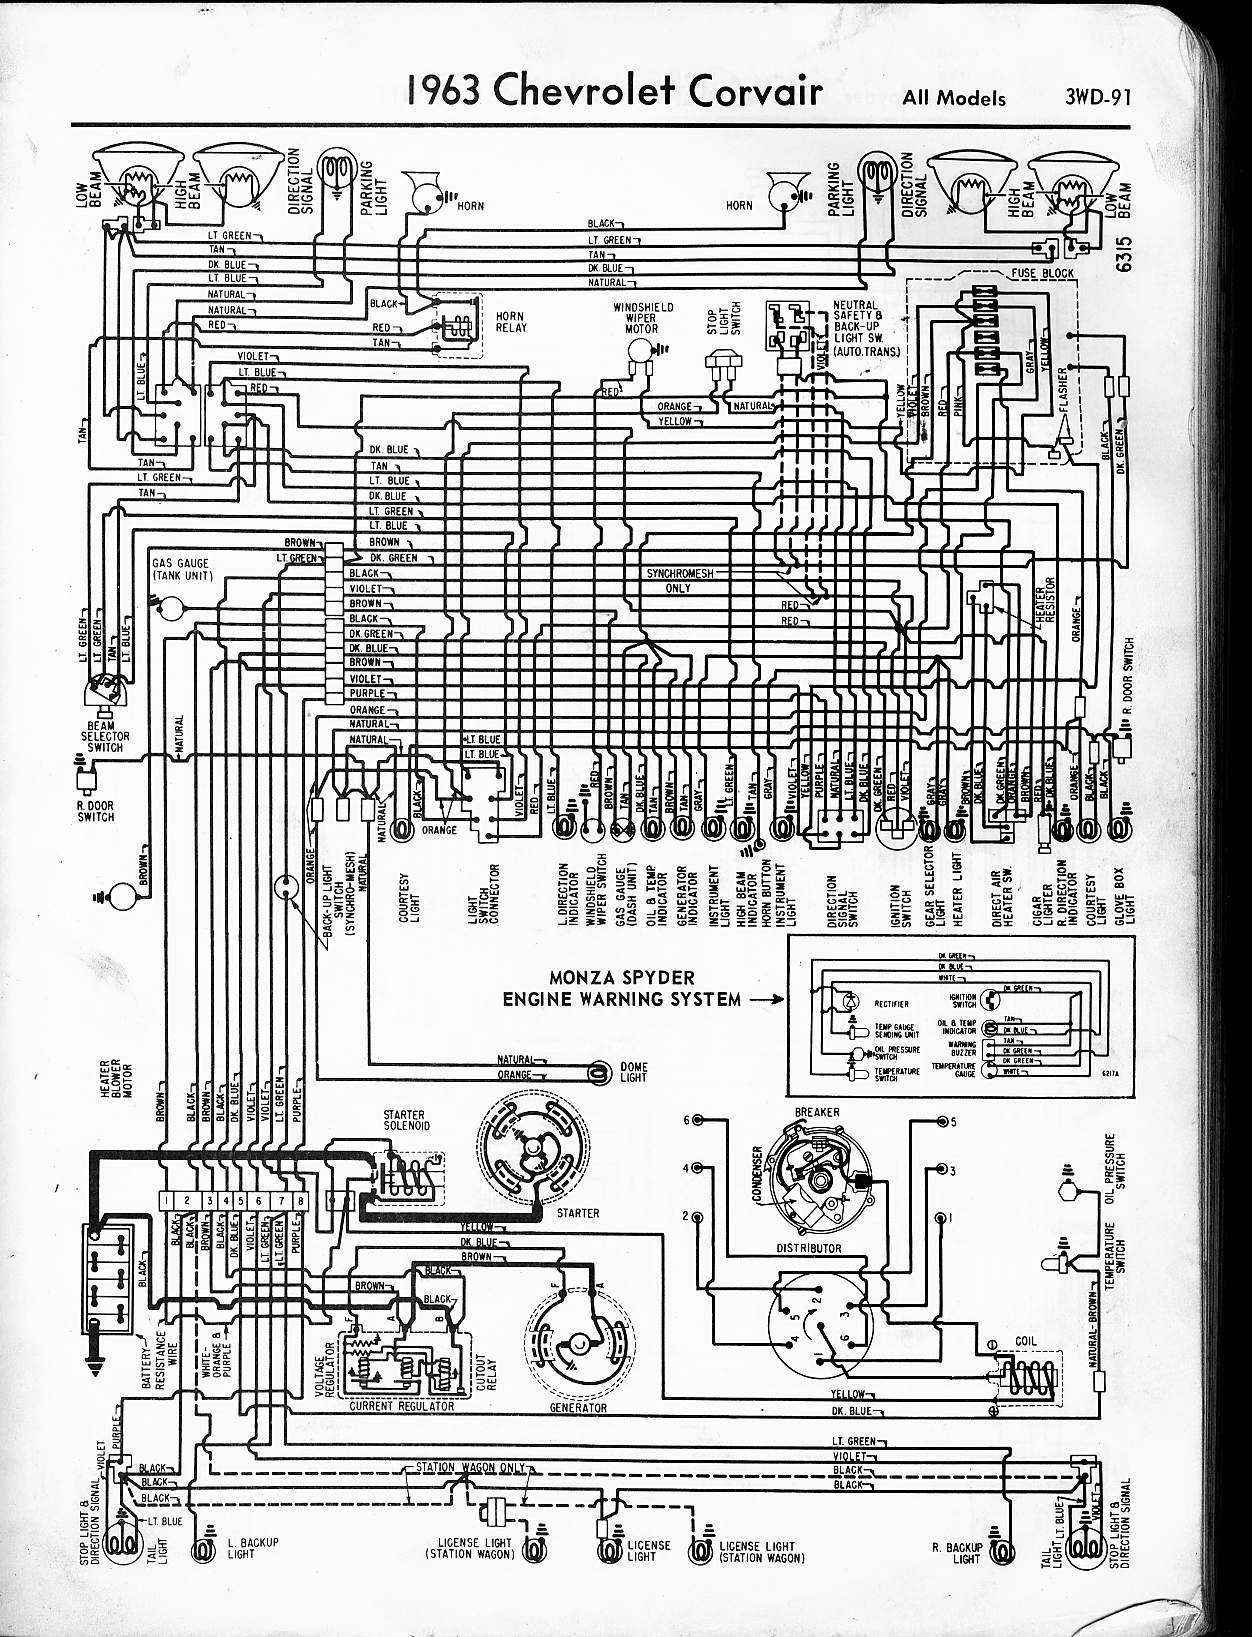 57 65 chevy wiring diagrams rh oldcarmanualproject com 1965 impala engine wiring diagram 1965 mustang engine wiring diagram